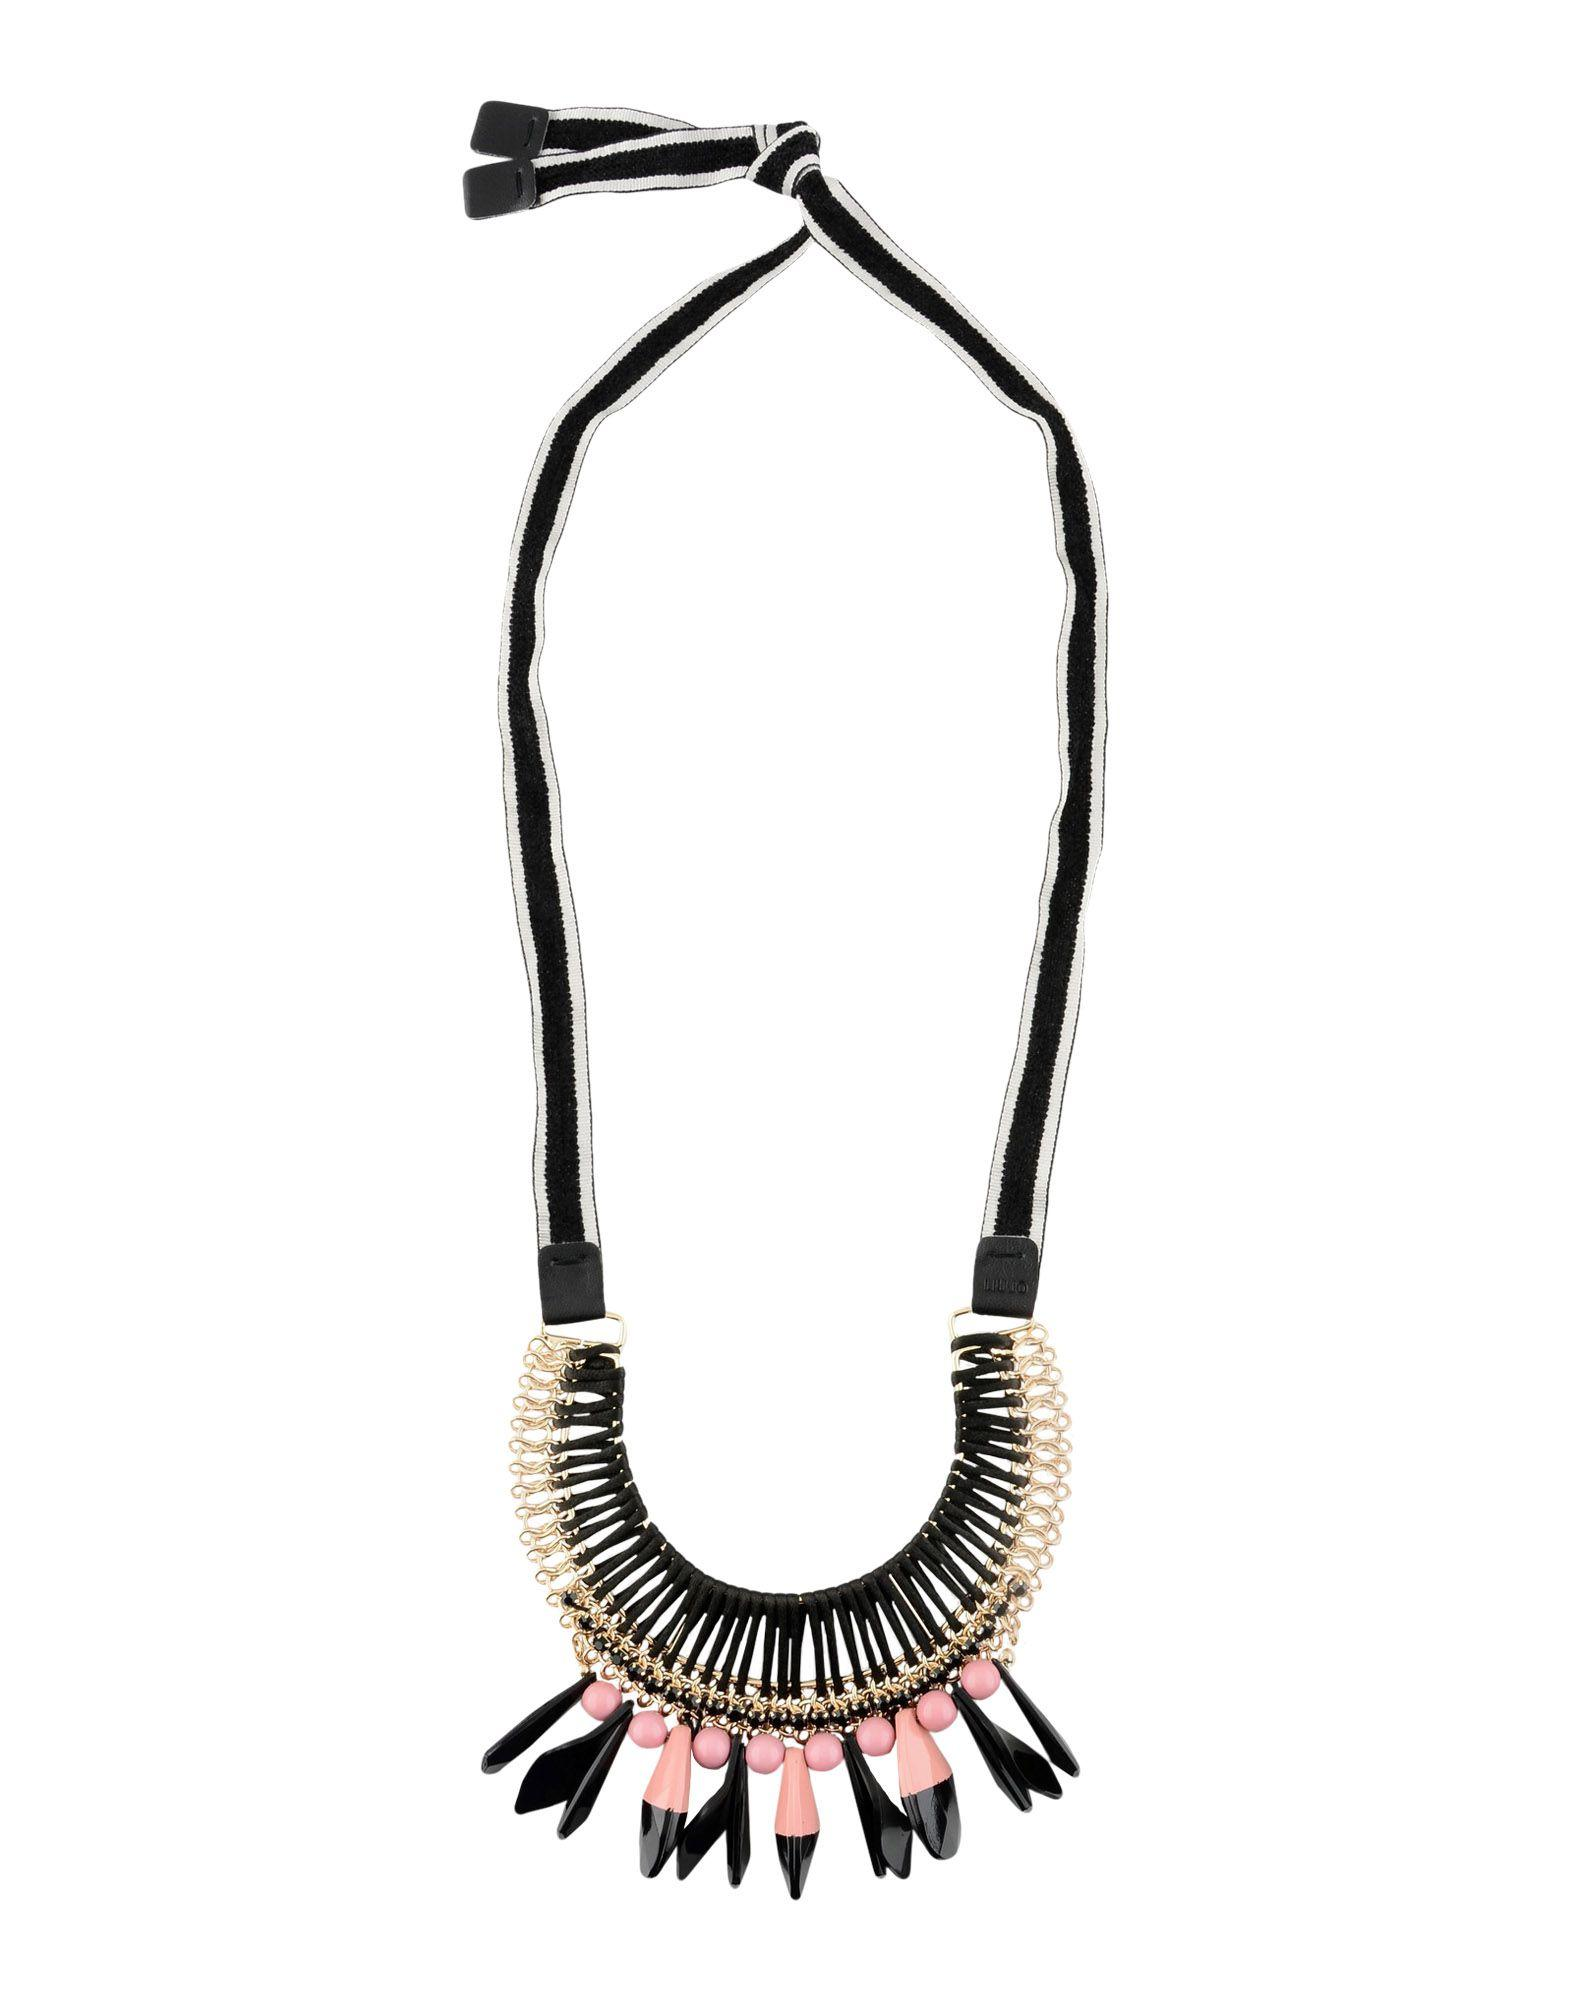 Liu •jo Necklace In Black